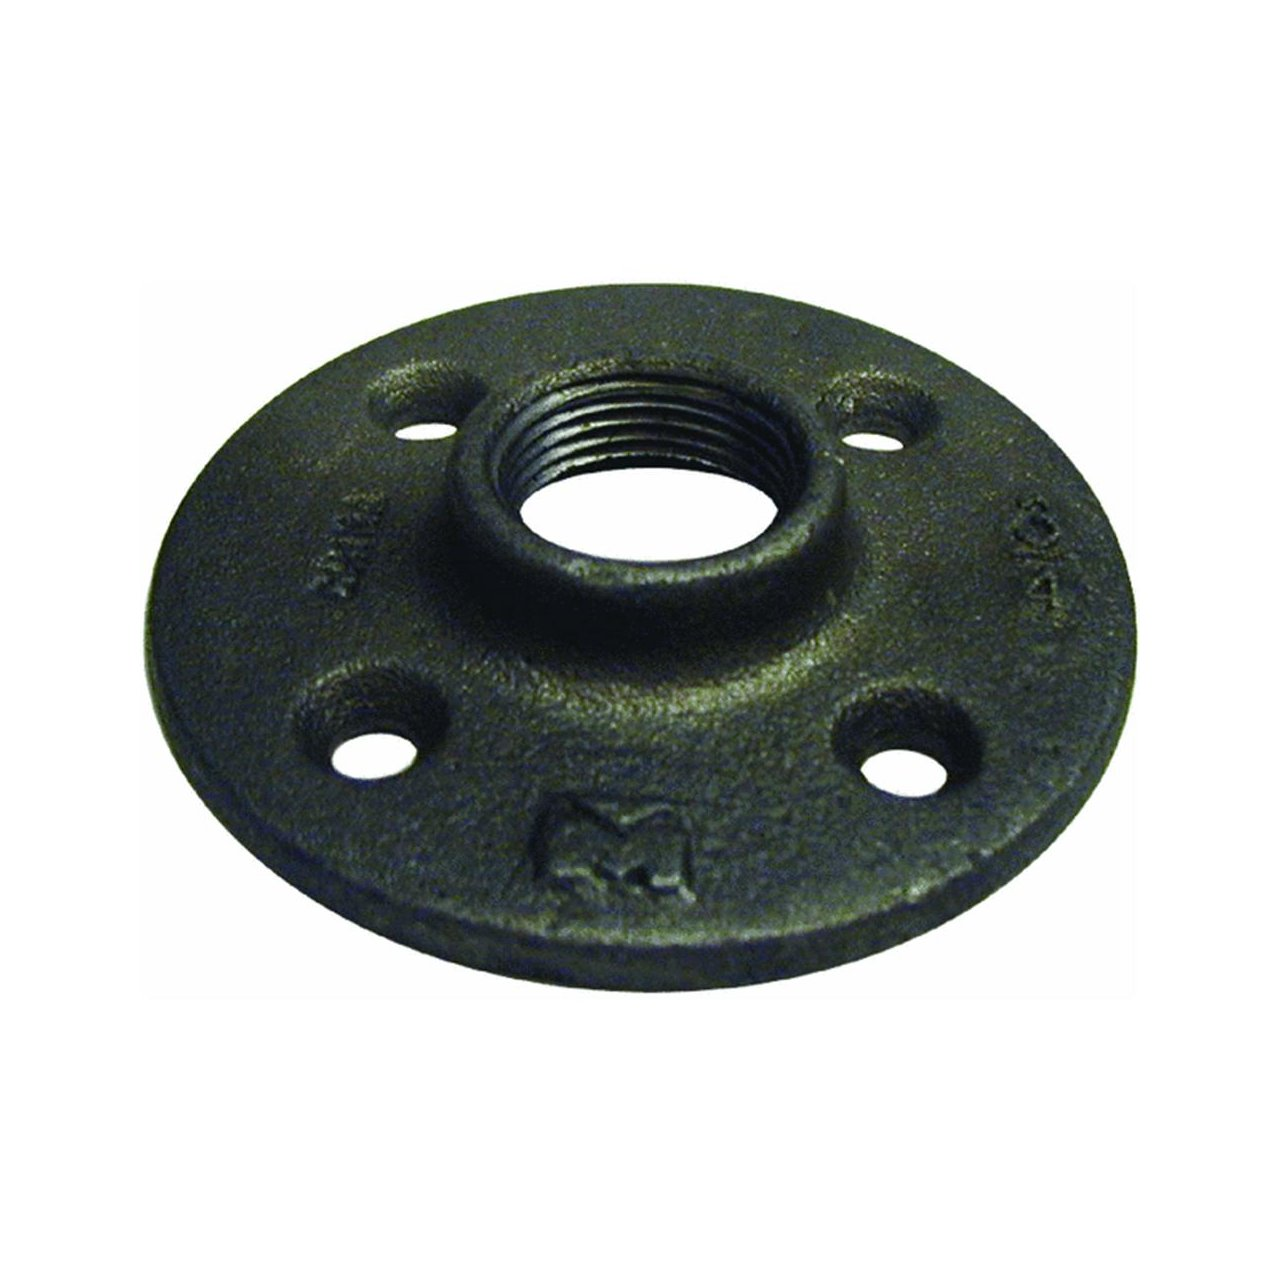 B k floor flange black iron 1 2 fip ebay for 1 black floor flange